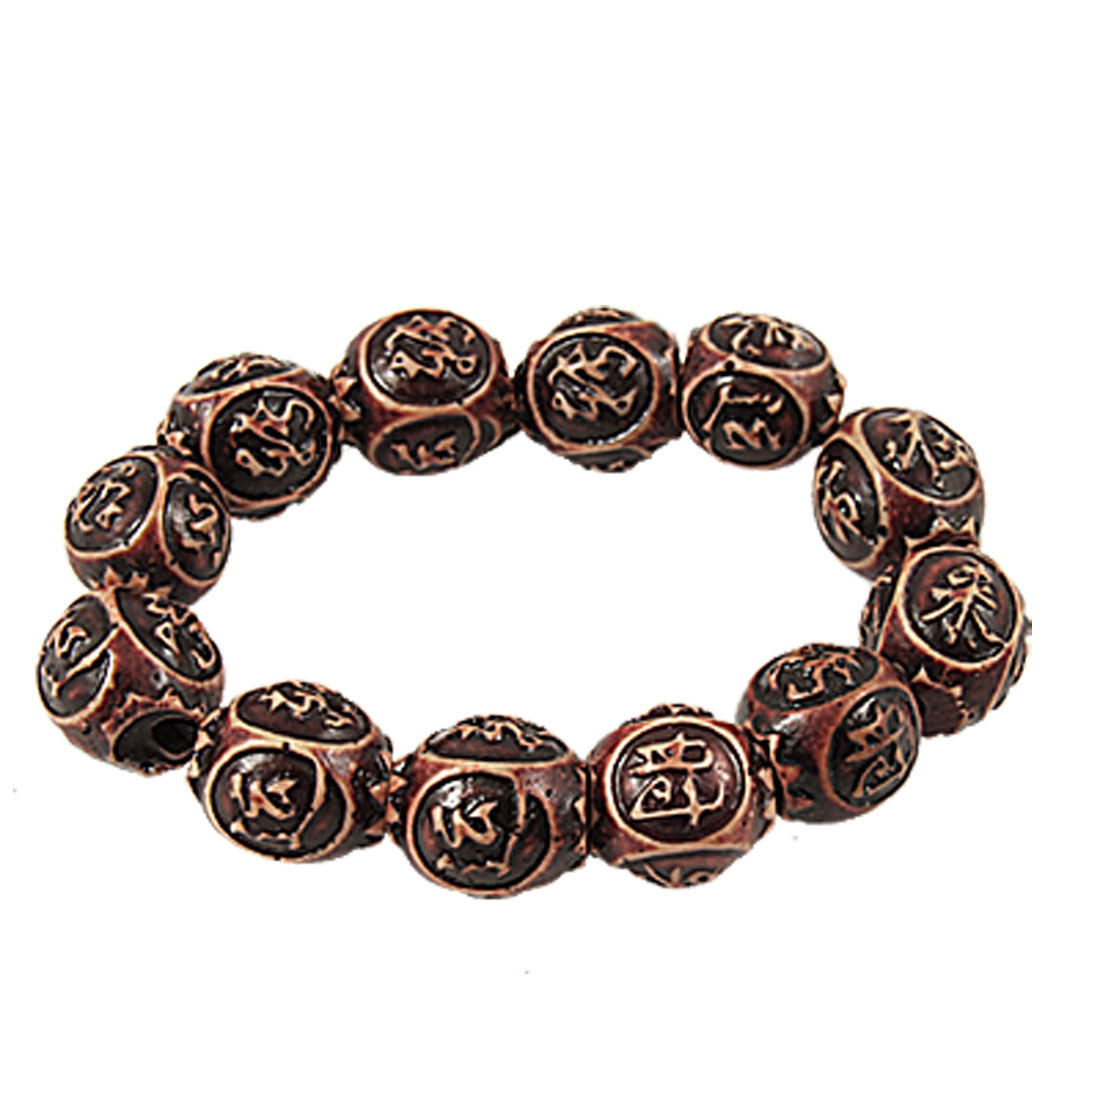 Unisex Chinese Character Print Plastic Beaded Auspicious Bracelet